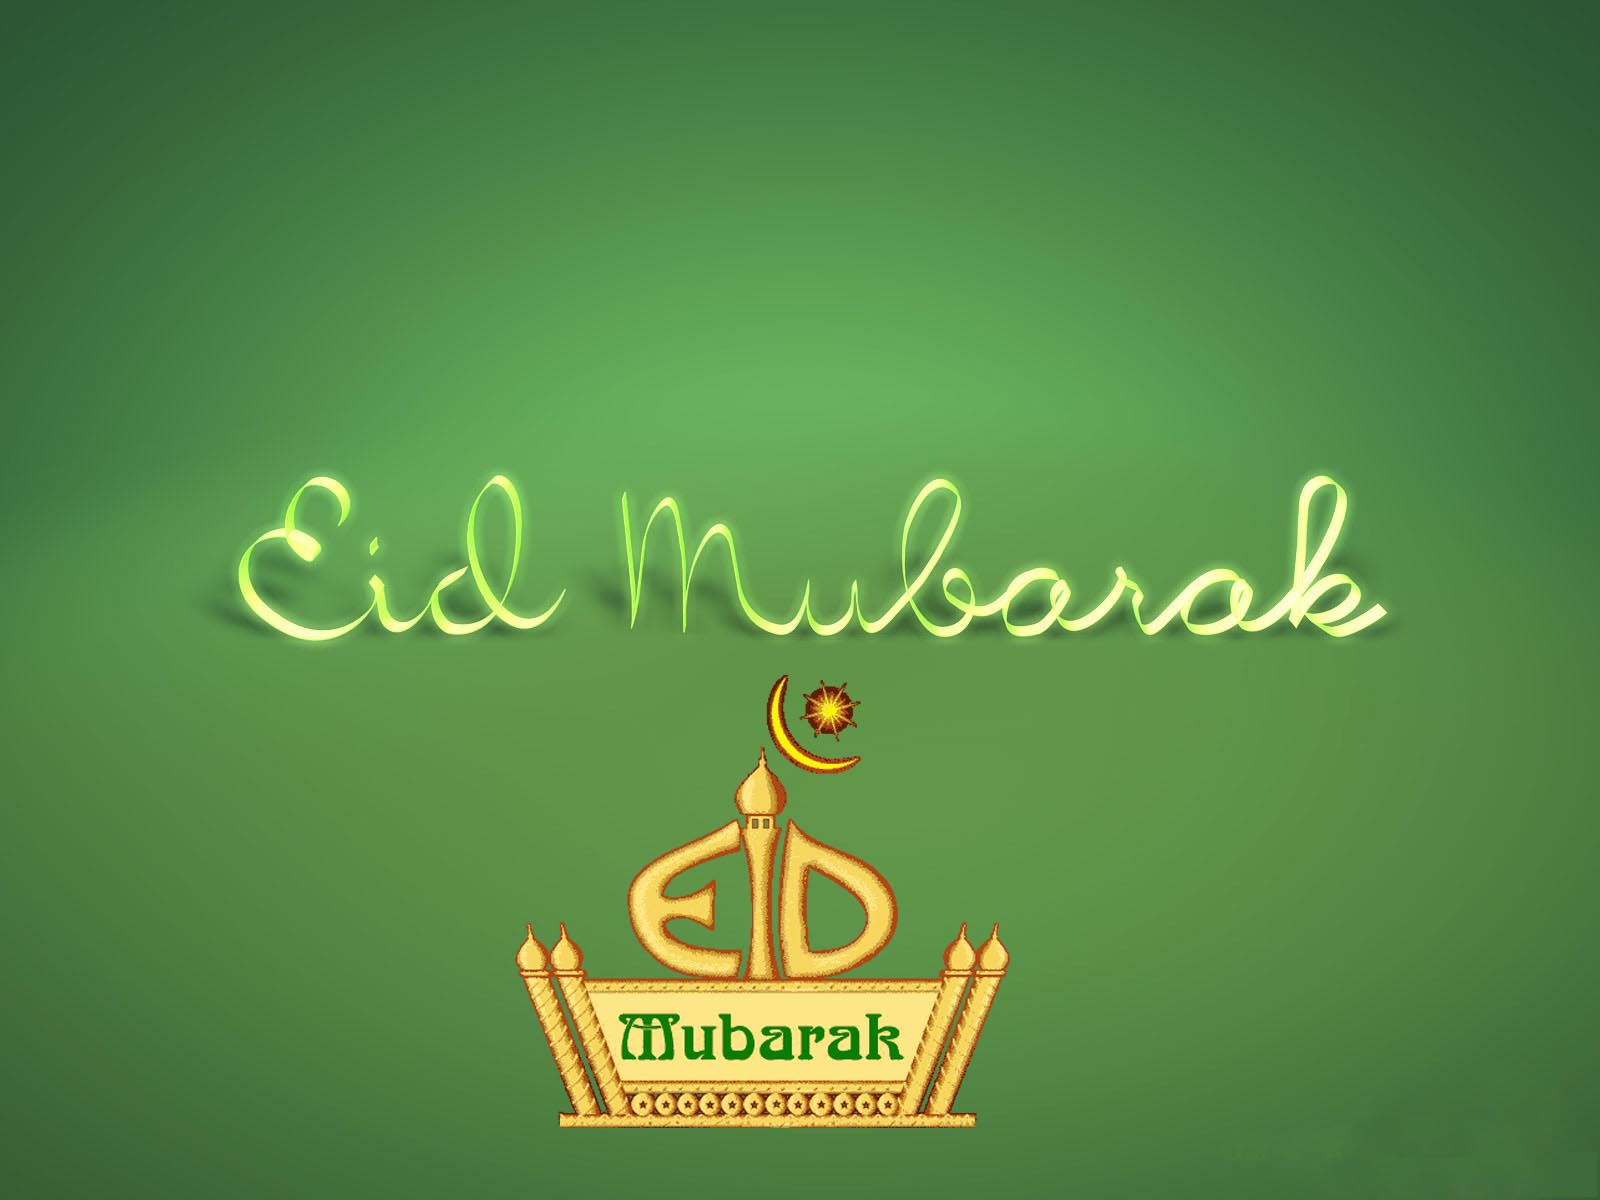 Eid greetings images choice image greeting card examples eid ul fitr greetings messages images for facebook whatsapp dp eid ul fitr greetings messages images m4hsunfo